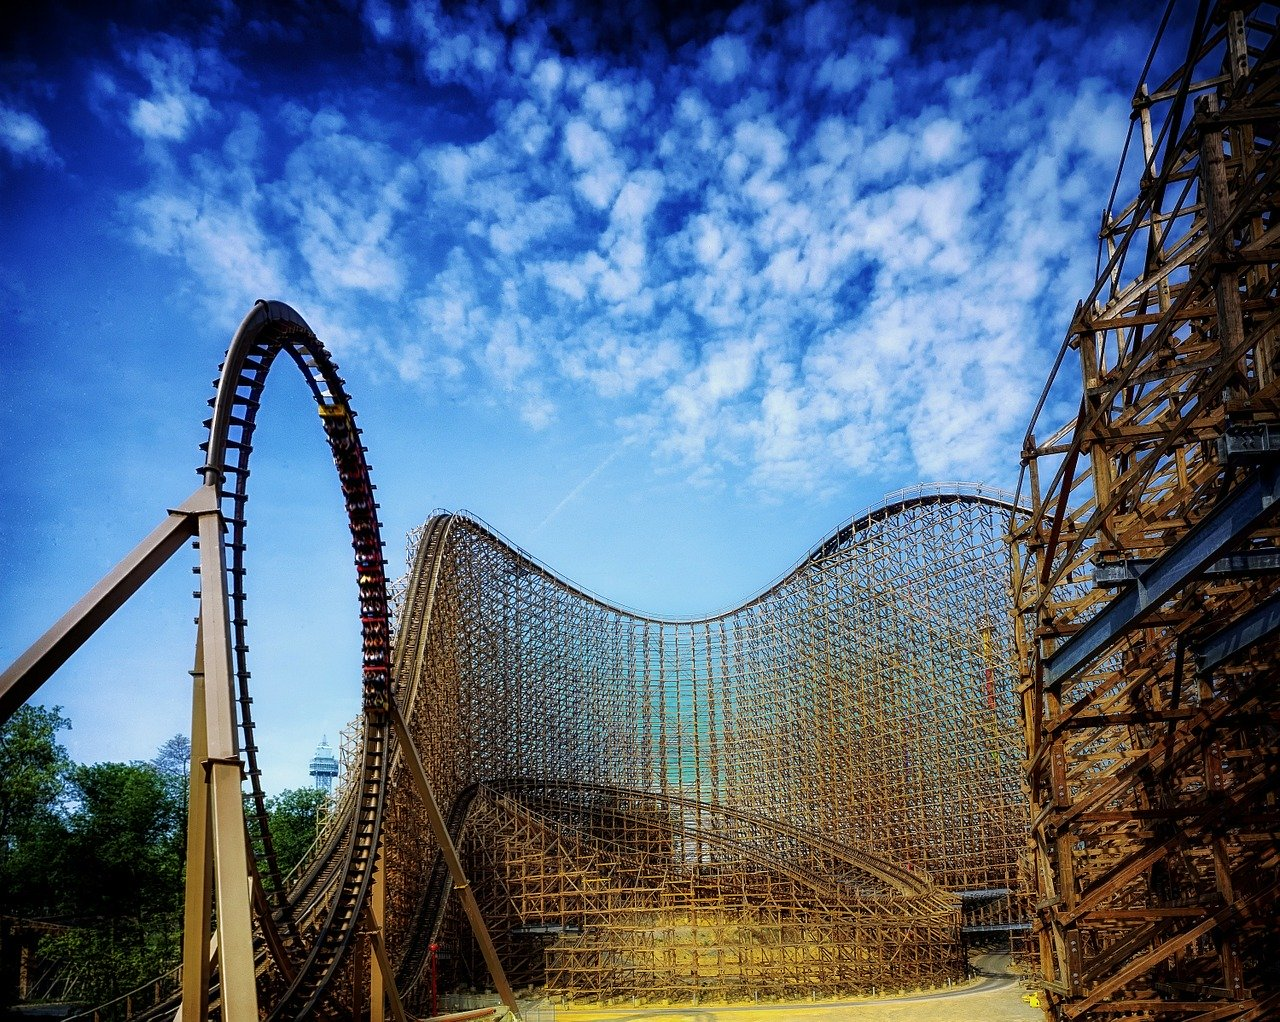 Kings Island is one of the best things to do in Cincinnati, Ohio, USA